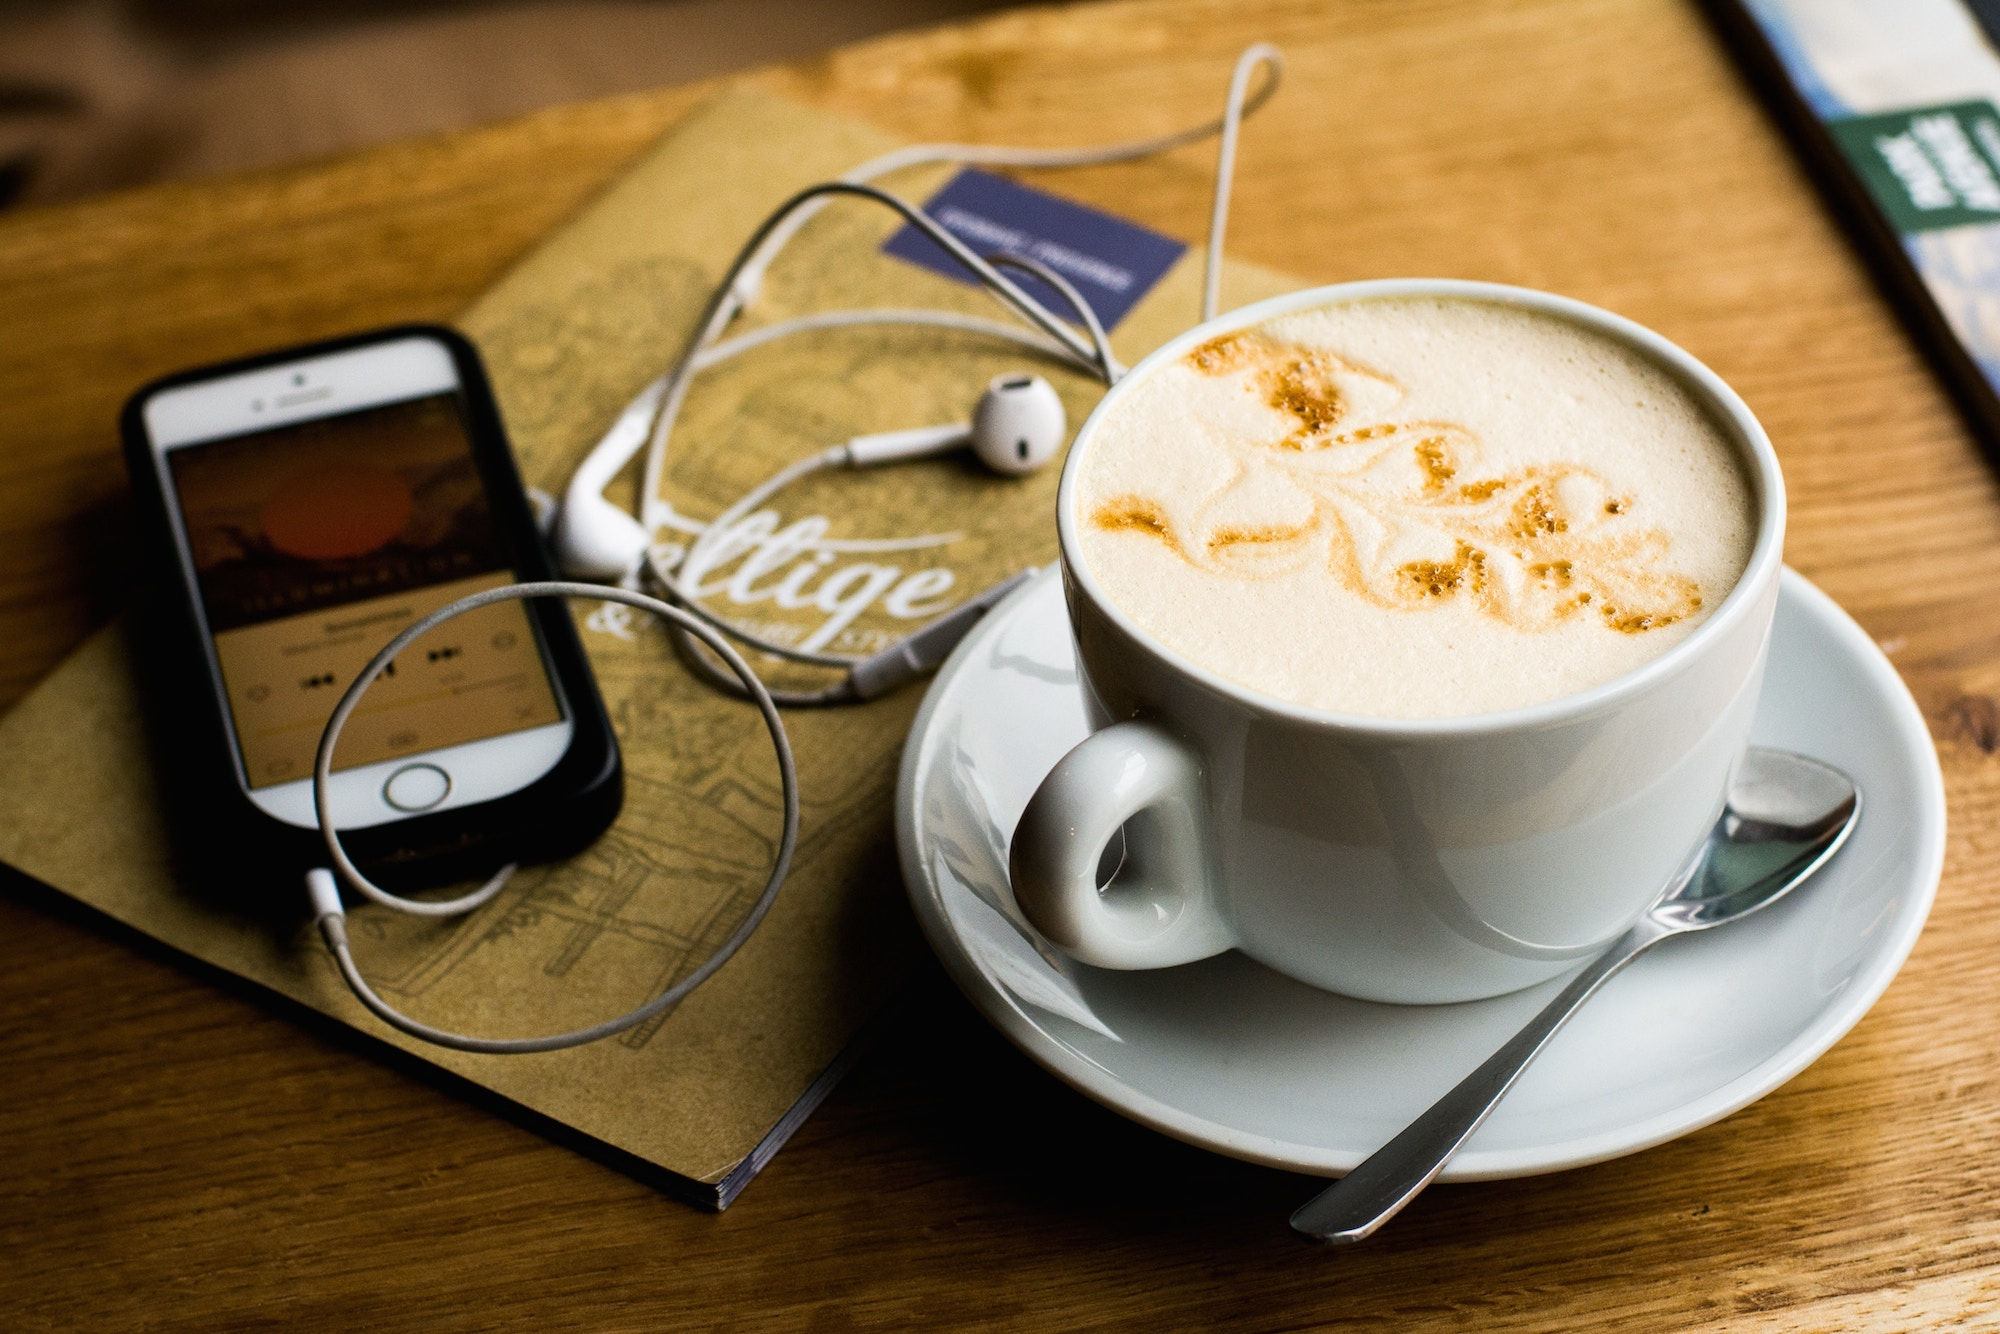 HiP Paris Blog rounds up the top French podcasts to enjoy while you have your coffee, like this creamy Cappuccino on a wooden table, next to a phone with a podcast on the screen.